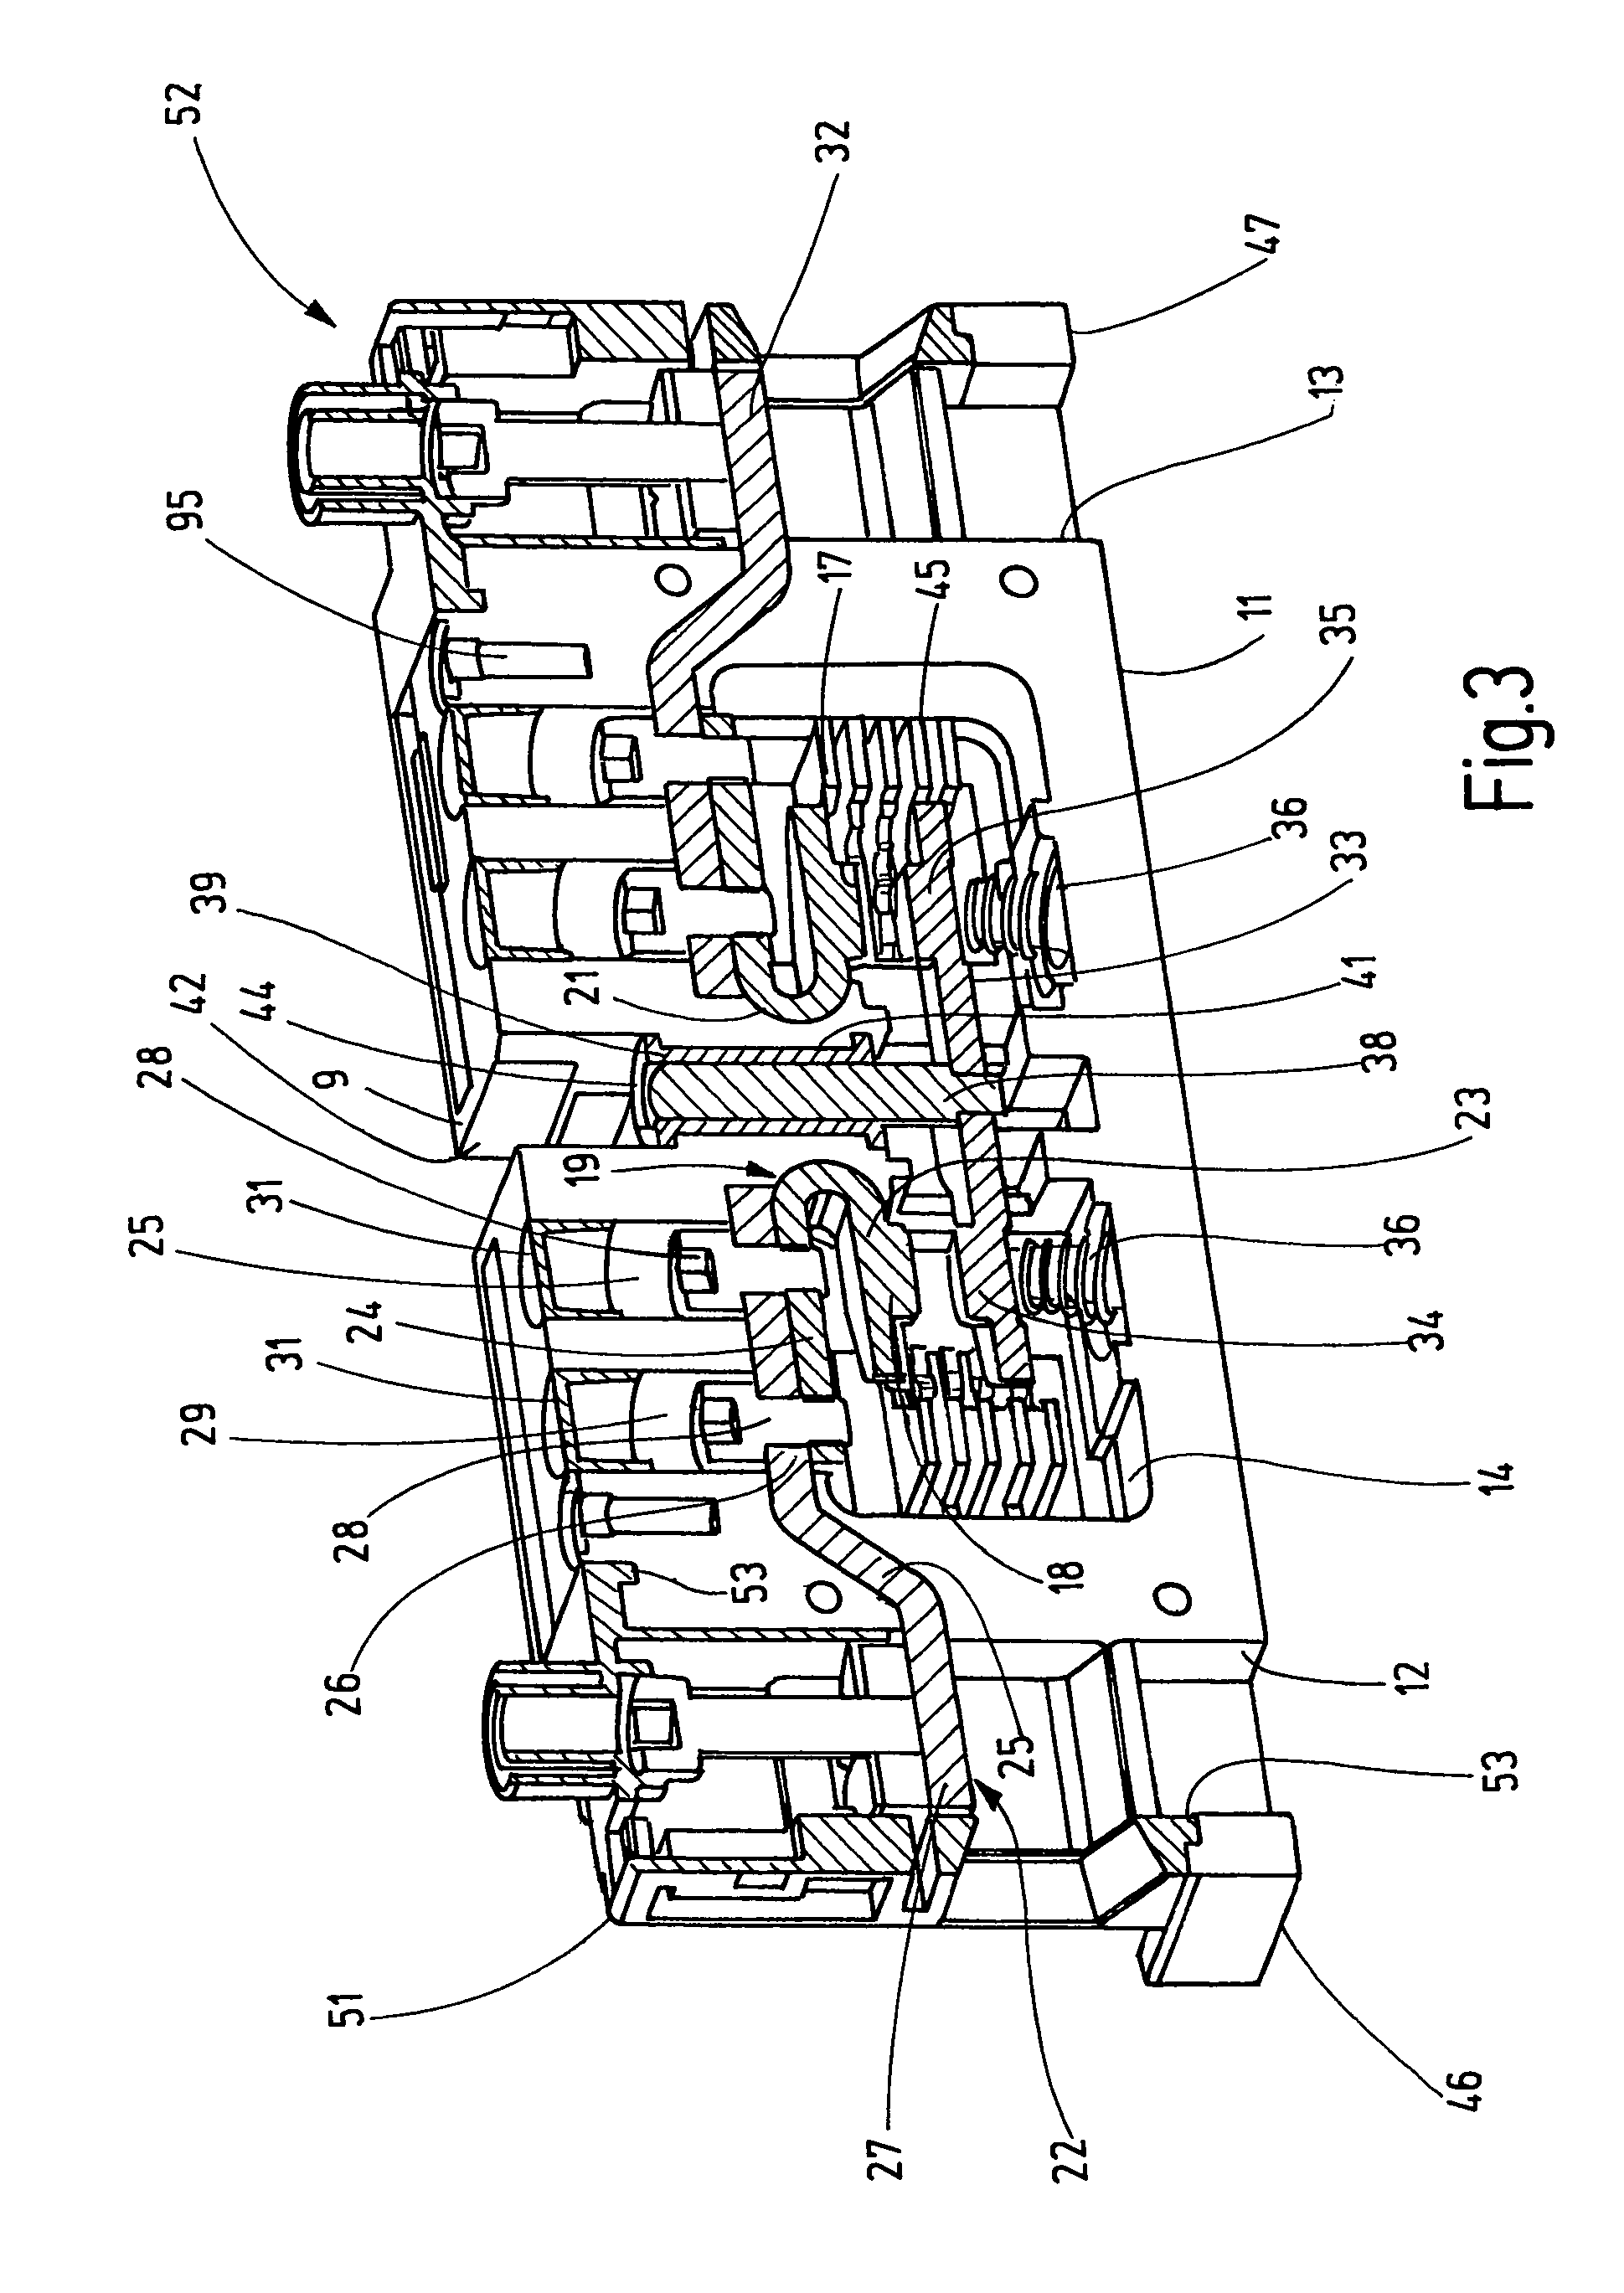 patent us8222546 - multi-position rotary switch